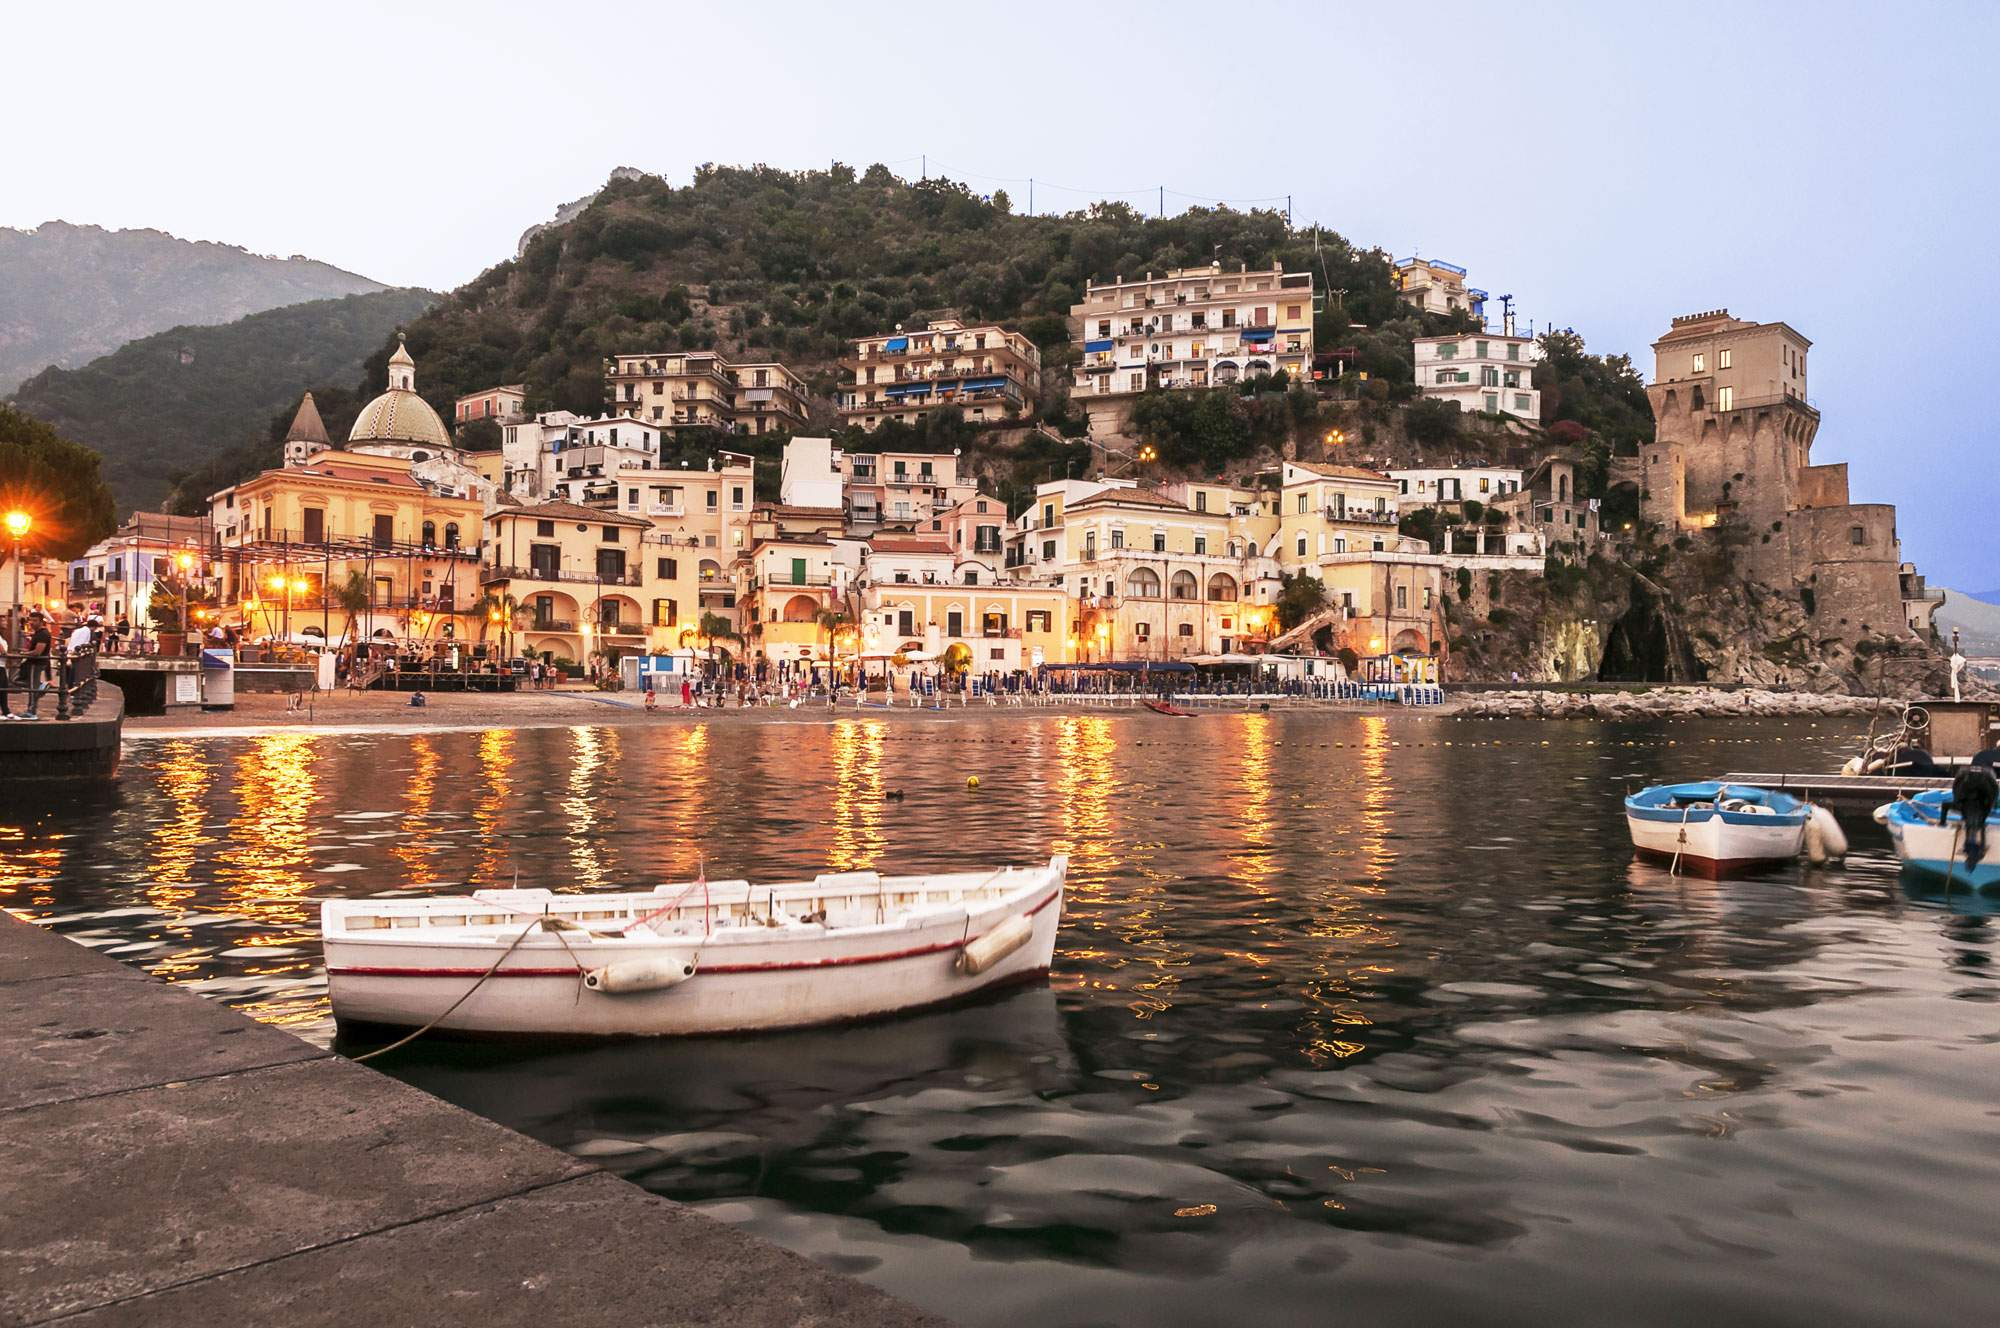 cetara-amalfi-coast-italy-travel-boats-dusk